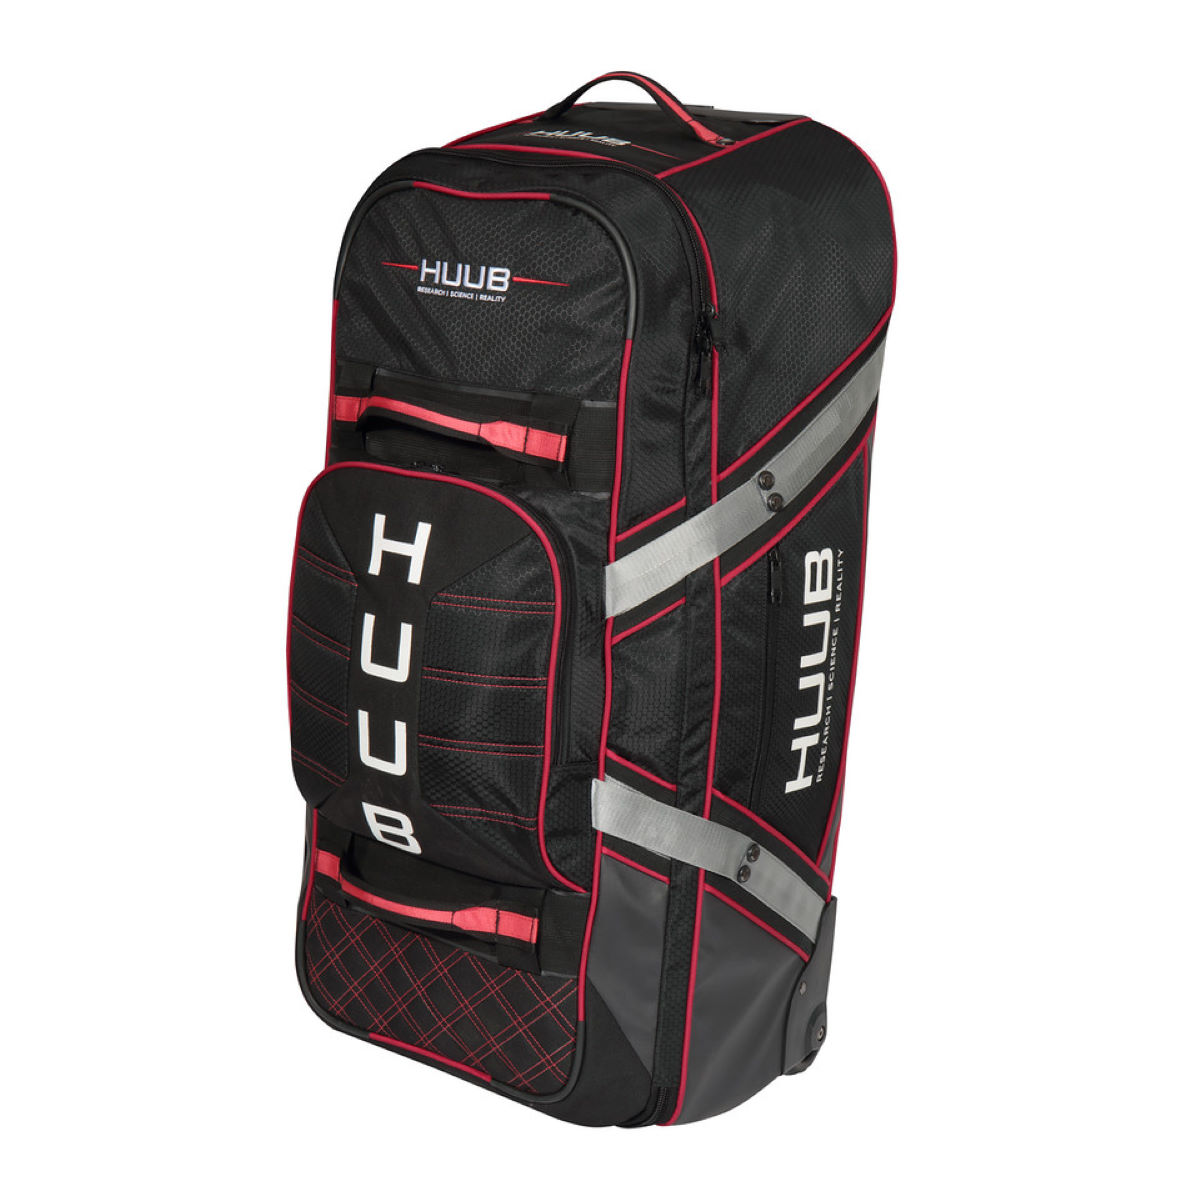 HUUB Wheelie Travel Bag - One Size Black | Rucksacks